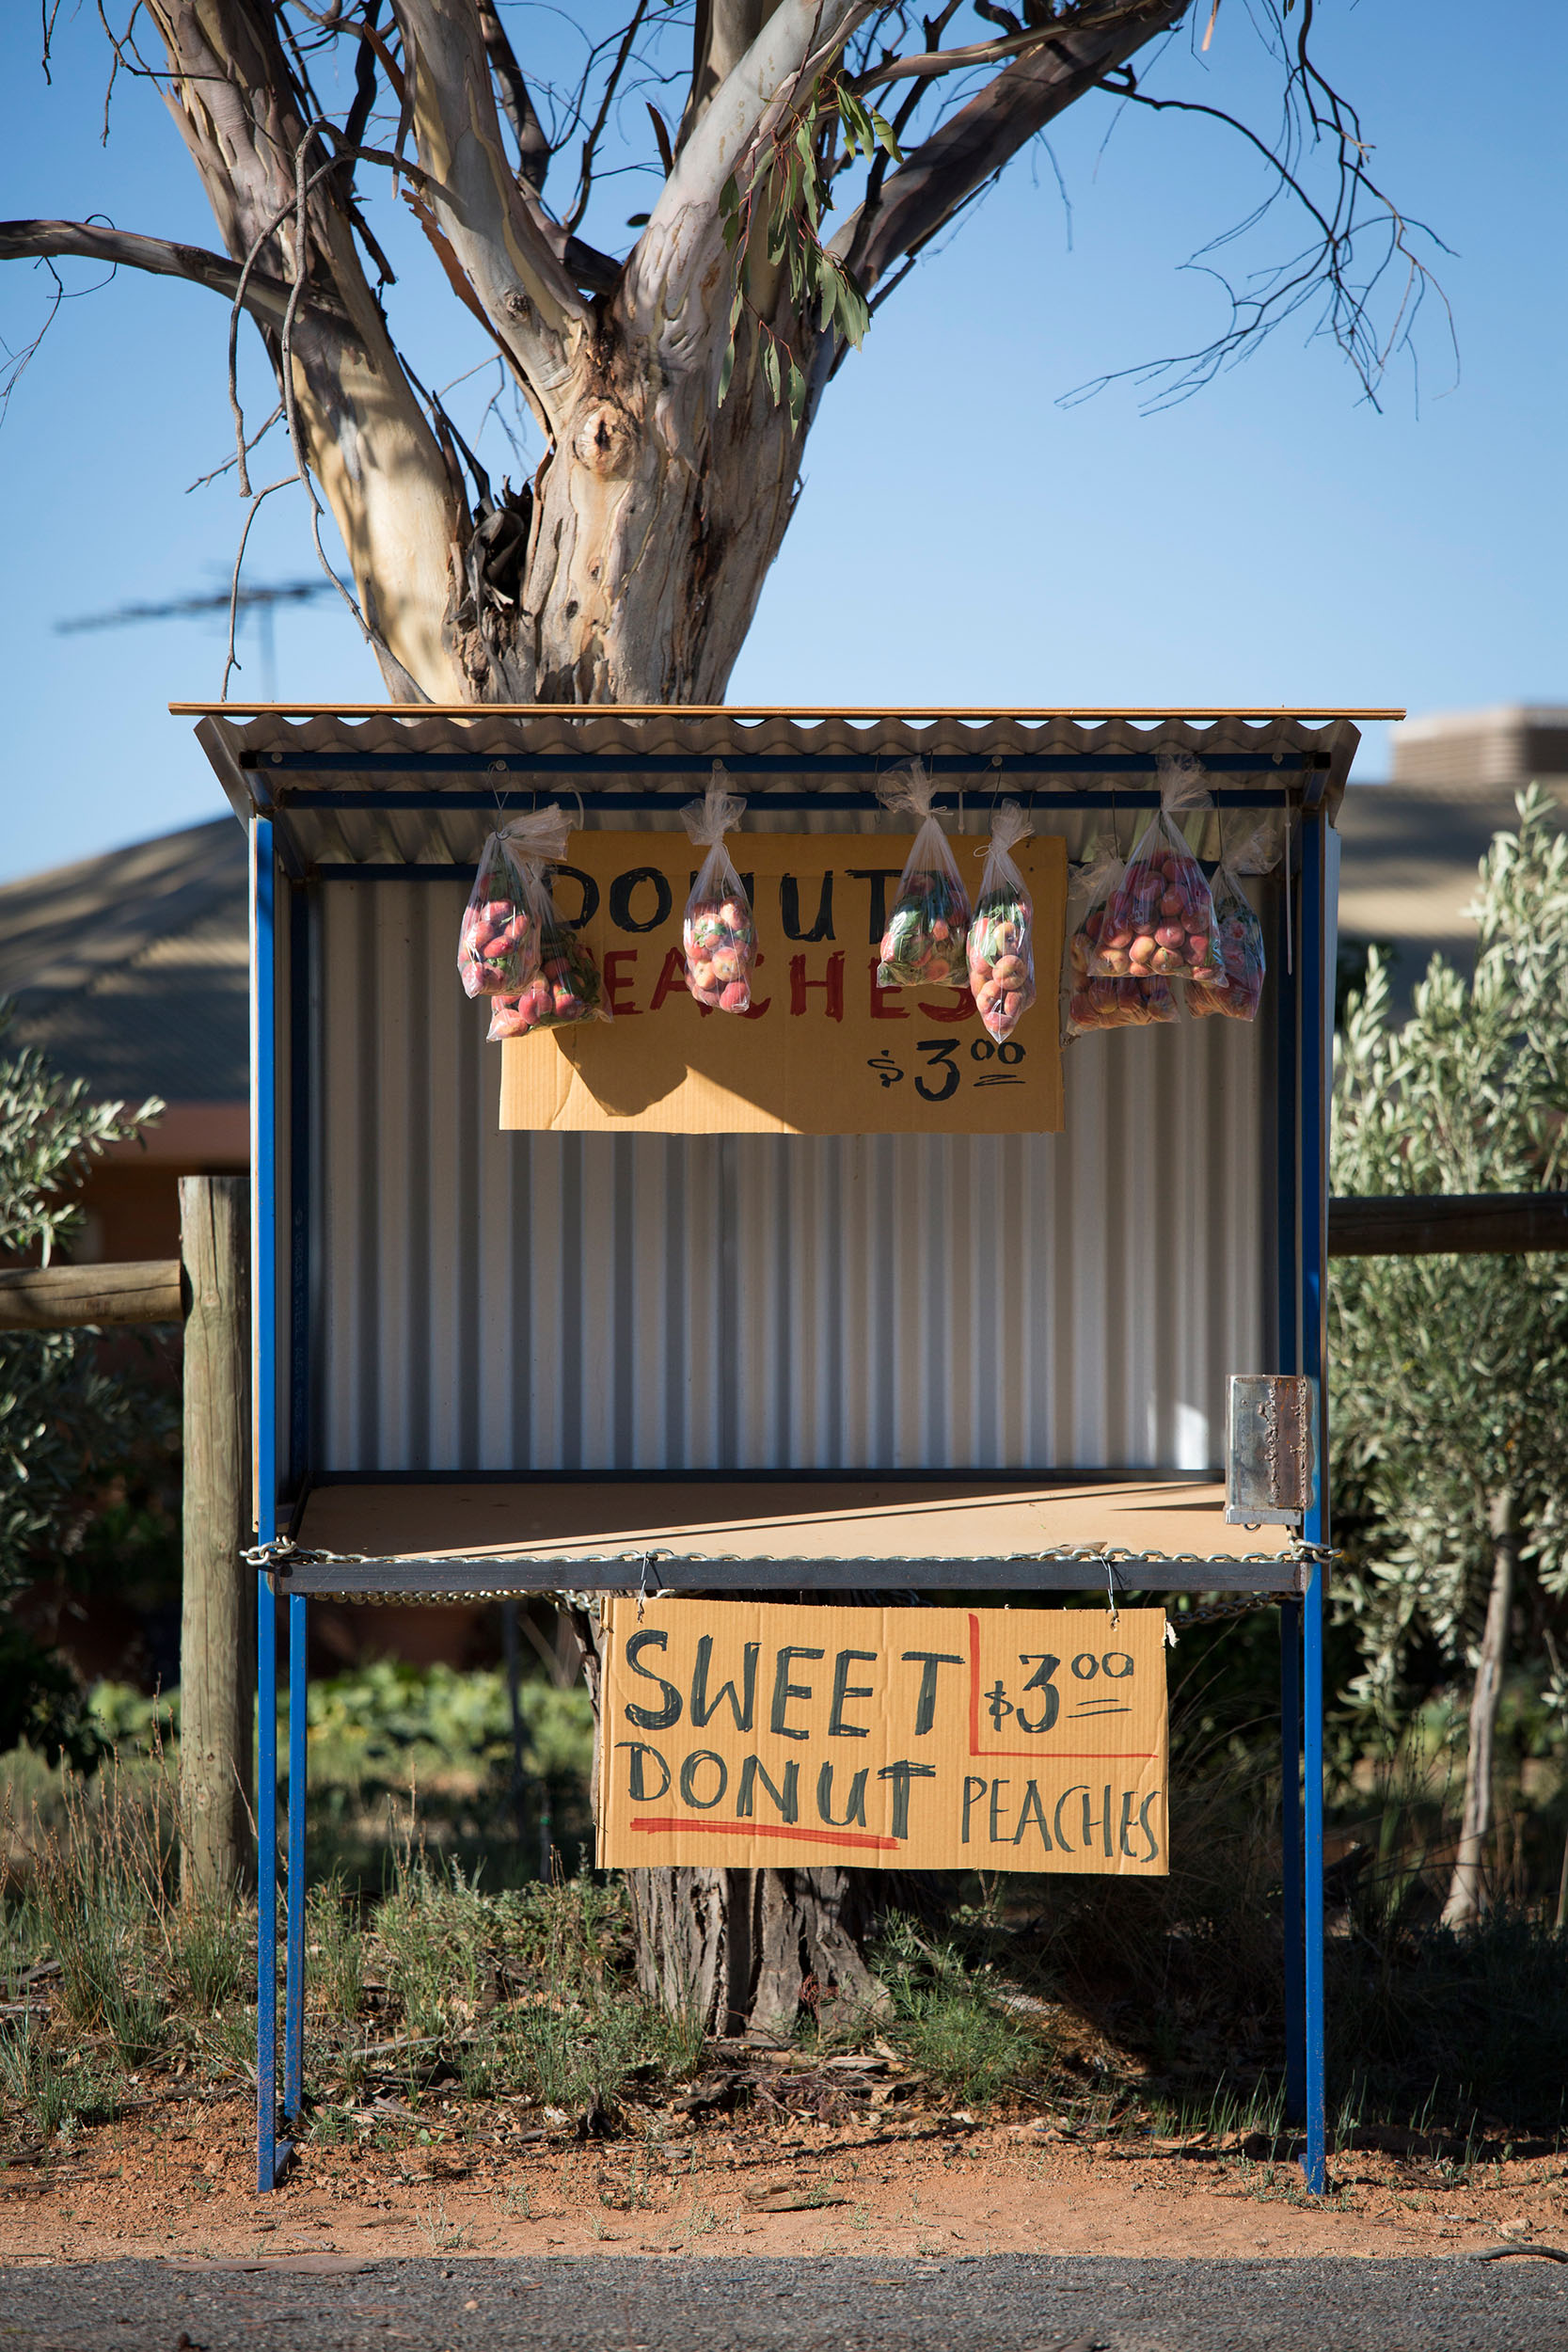 Roadside stall selling donut peaches, Cabarita, VIC.